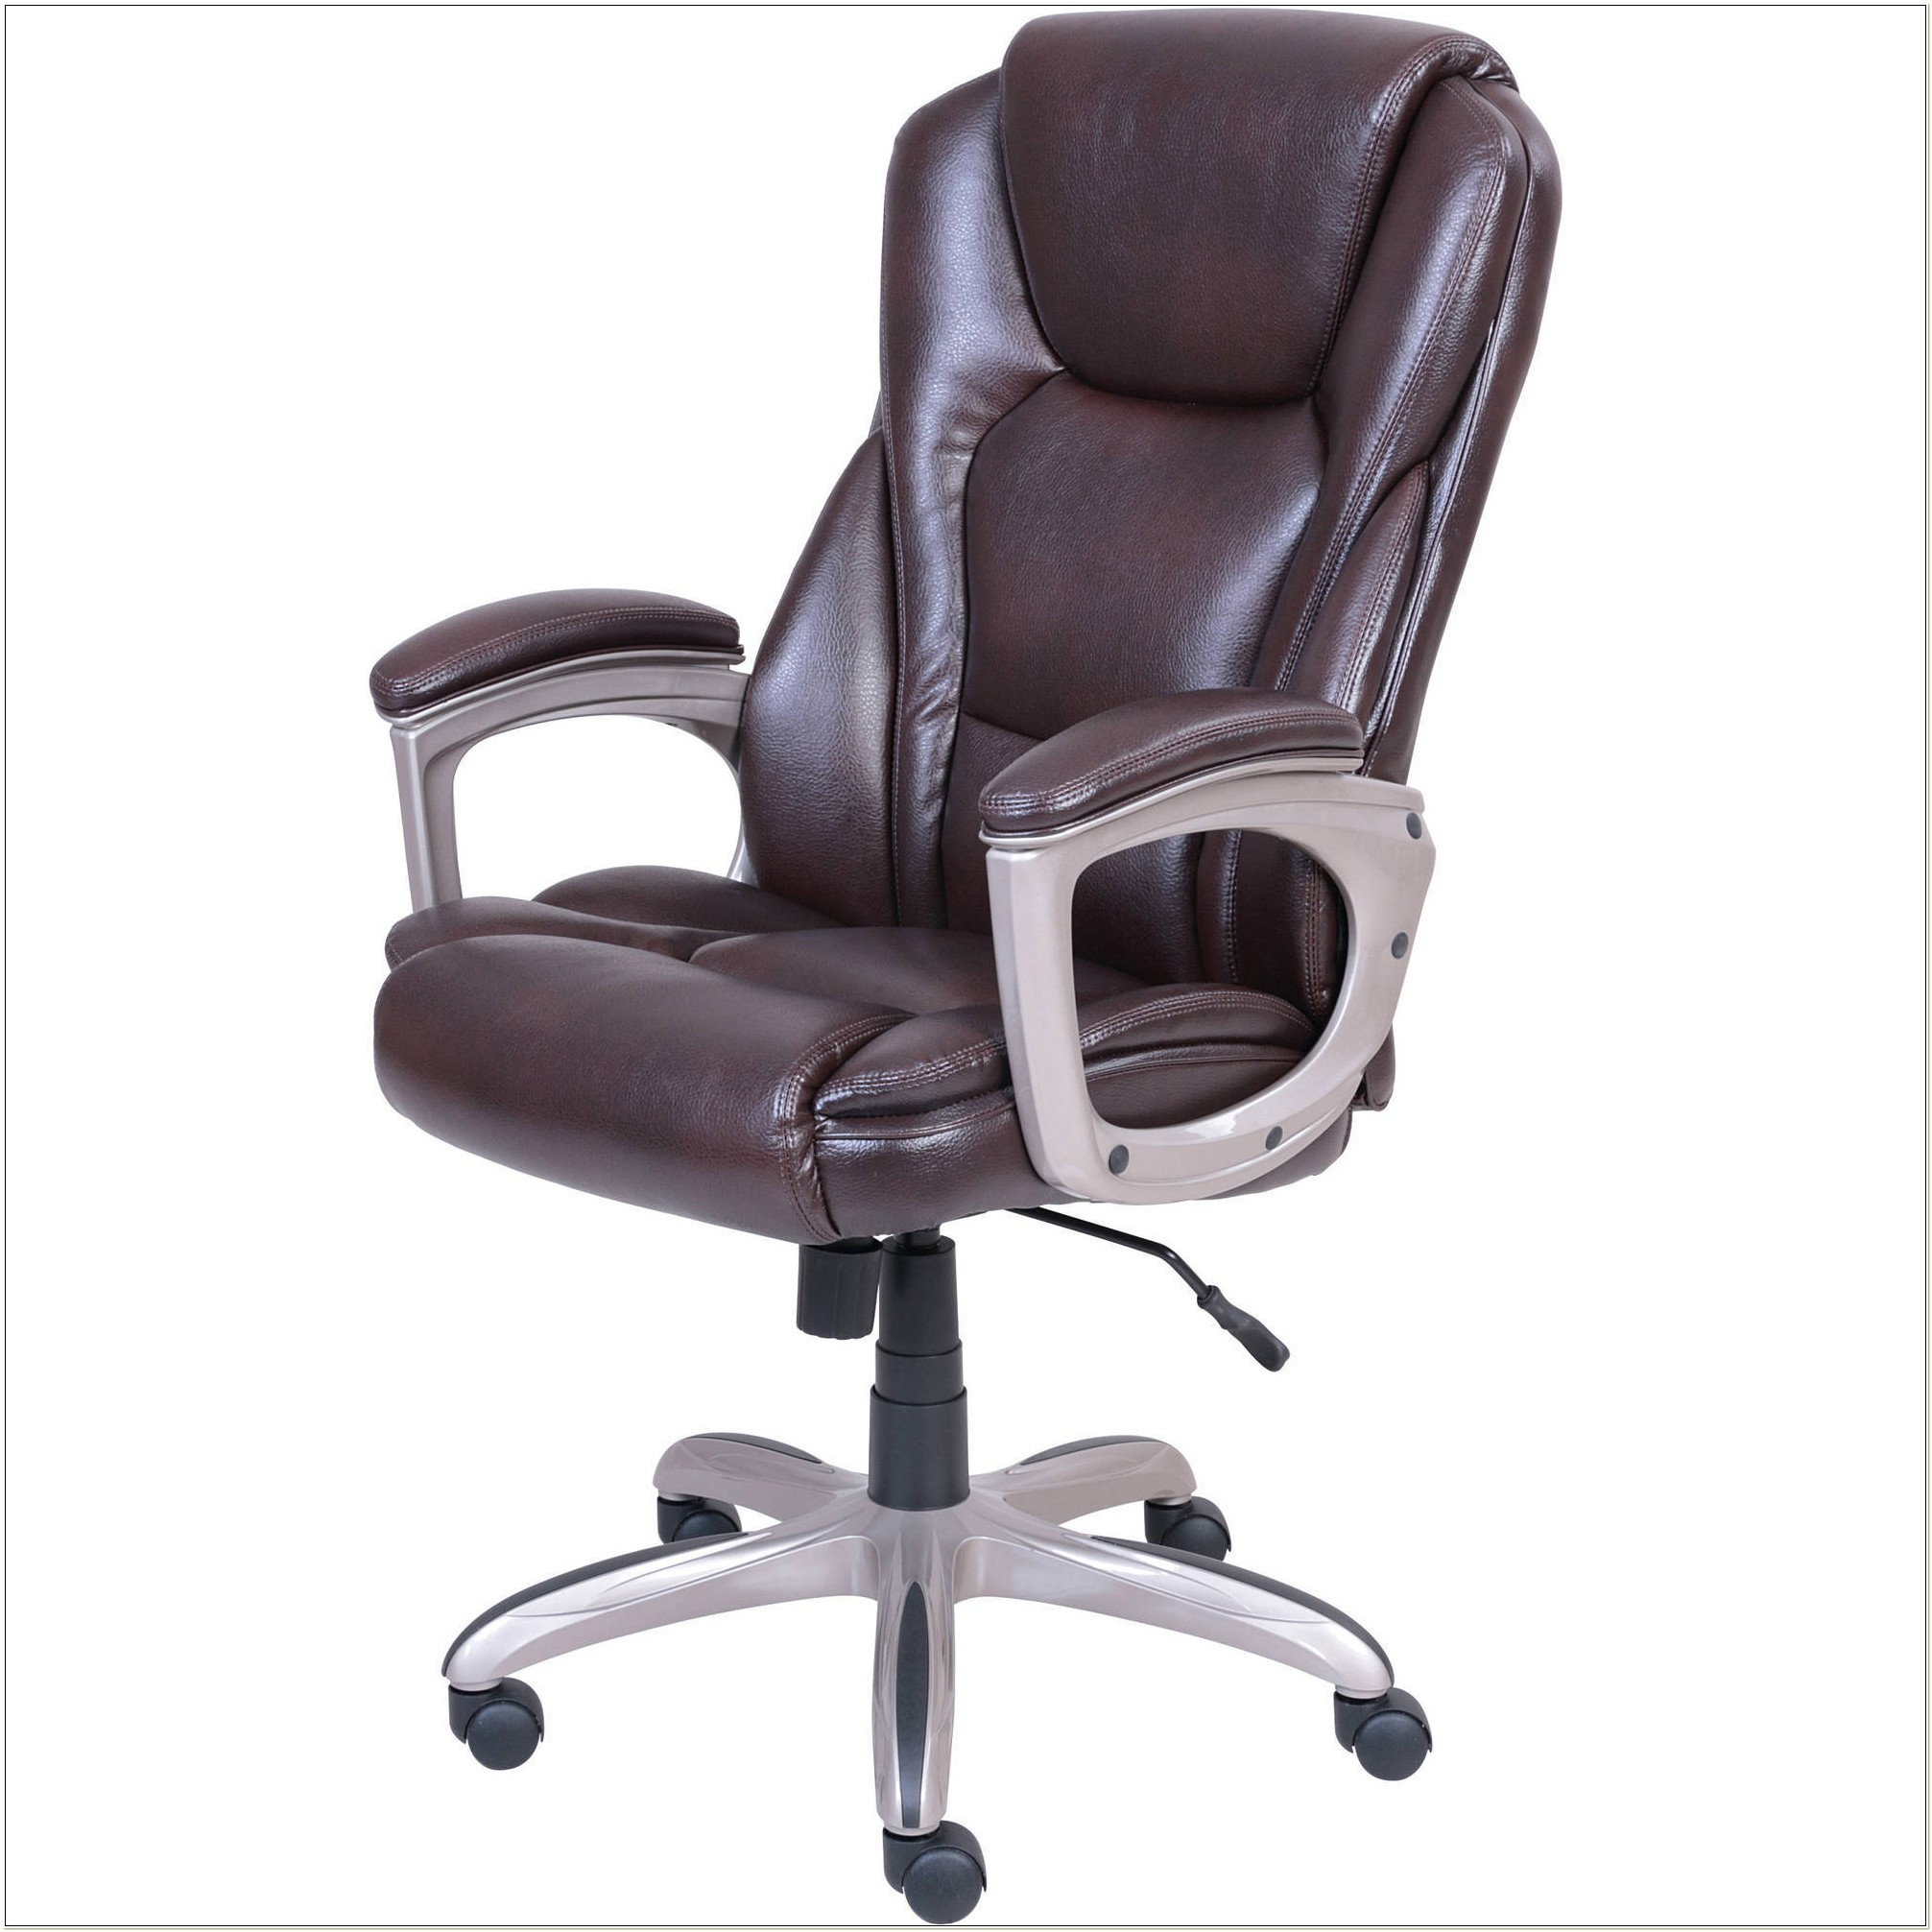 Serta Managers Leather Office Chair